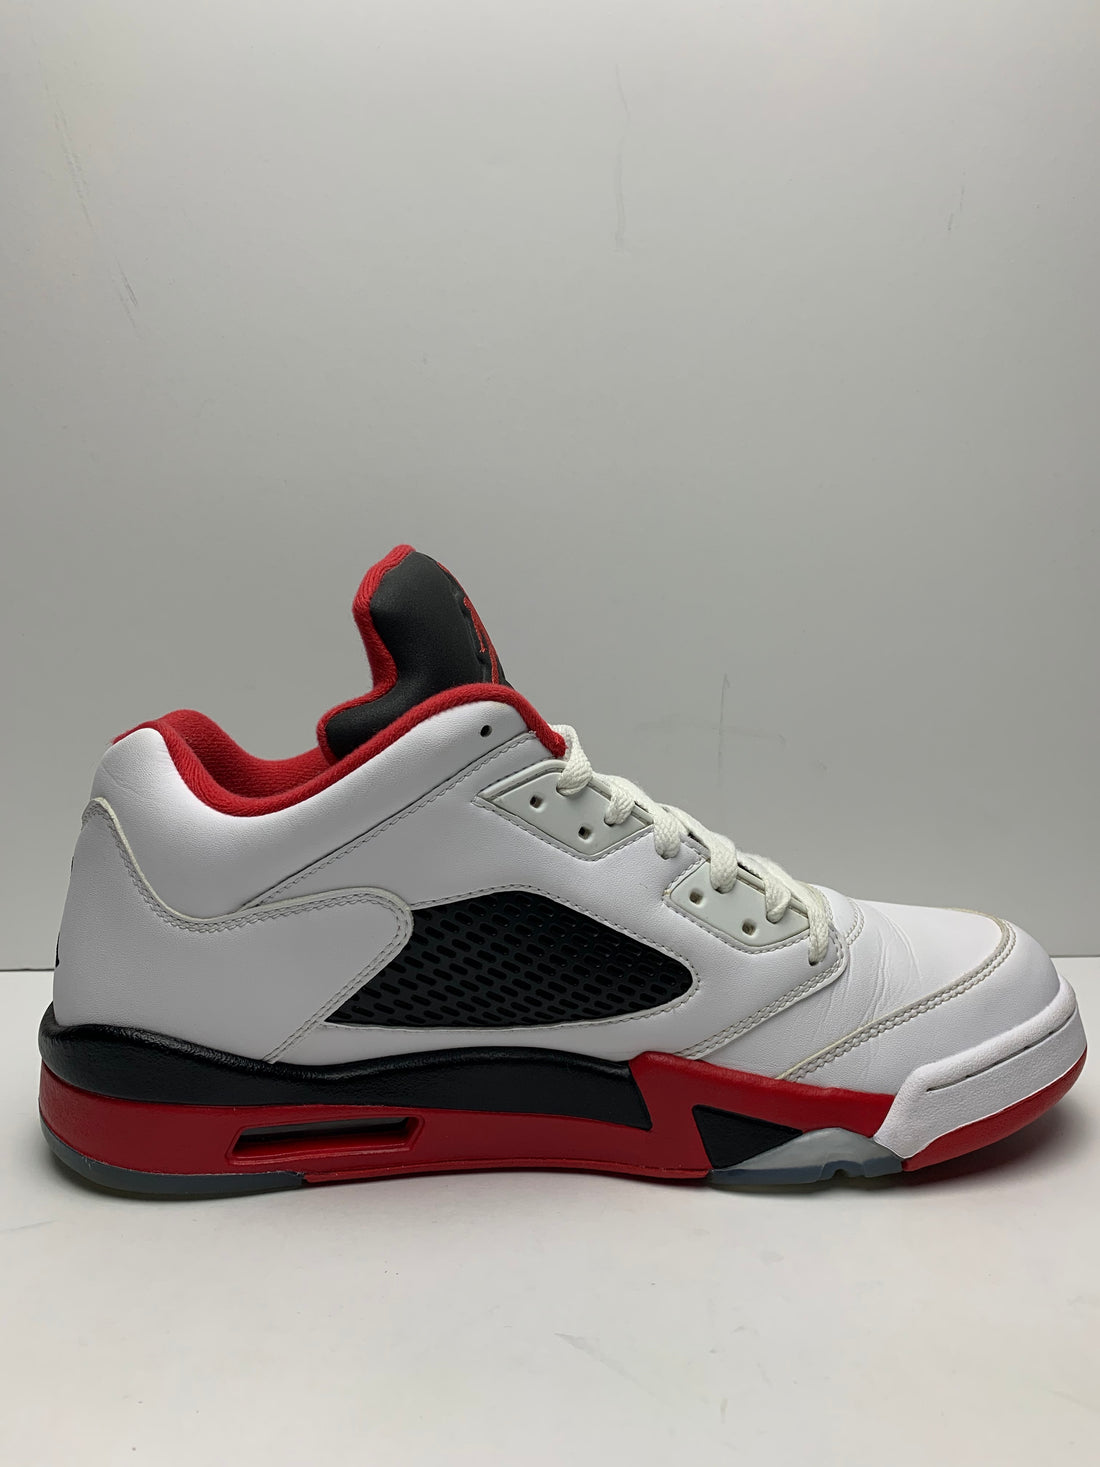 Jordan 5 Retro Low Fire Red